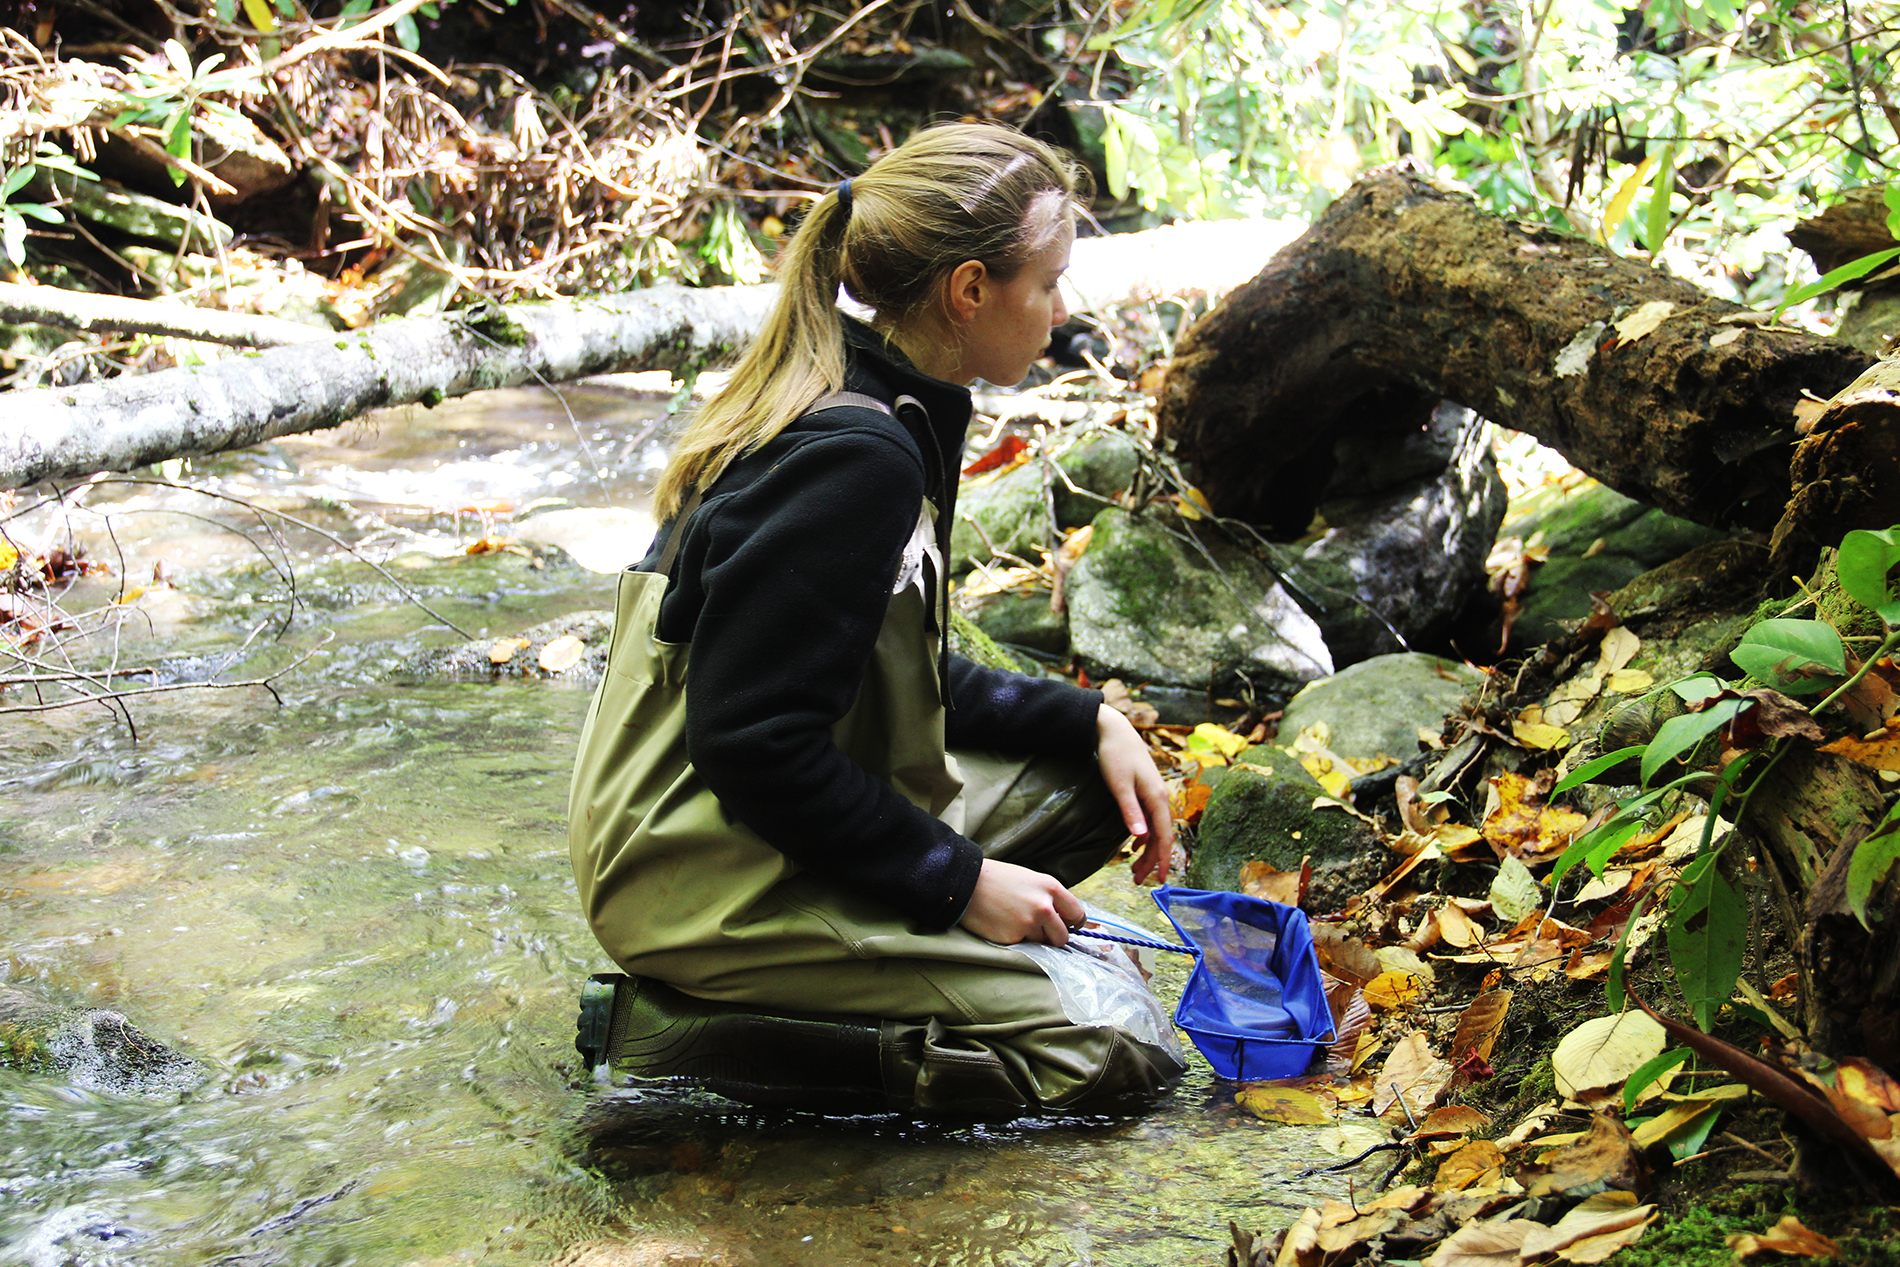 a female college student wearing waders kneels in a stream, a blue salamander net in hand, and looks for salamanders